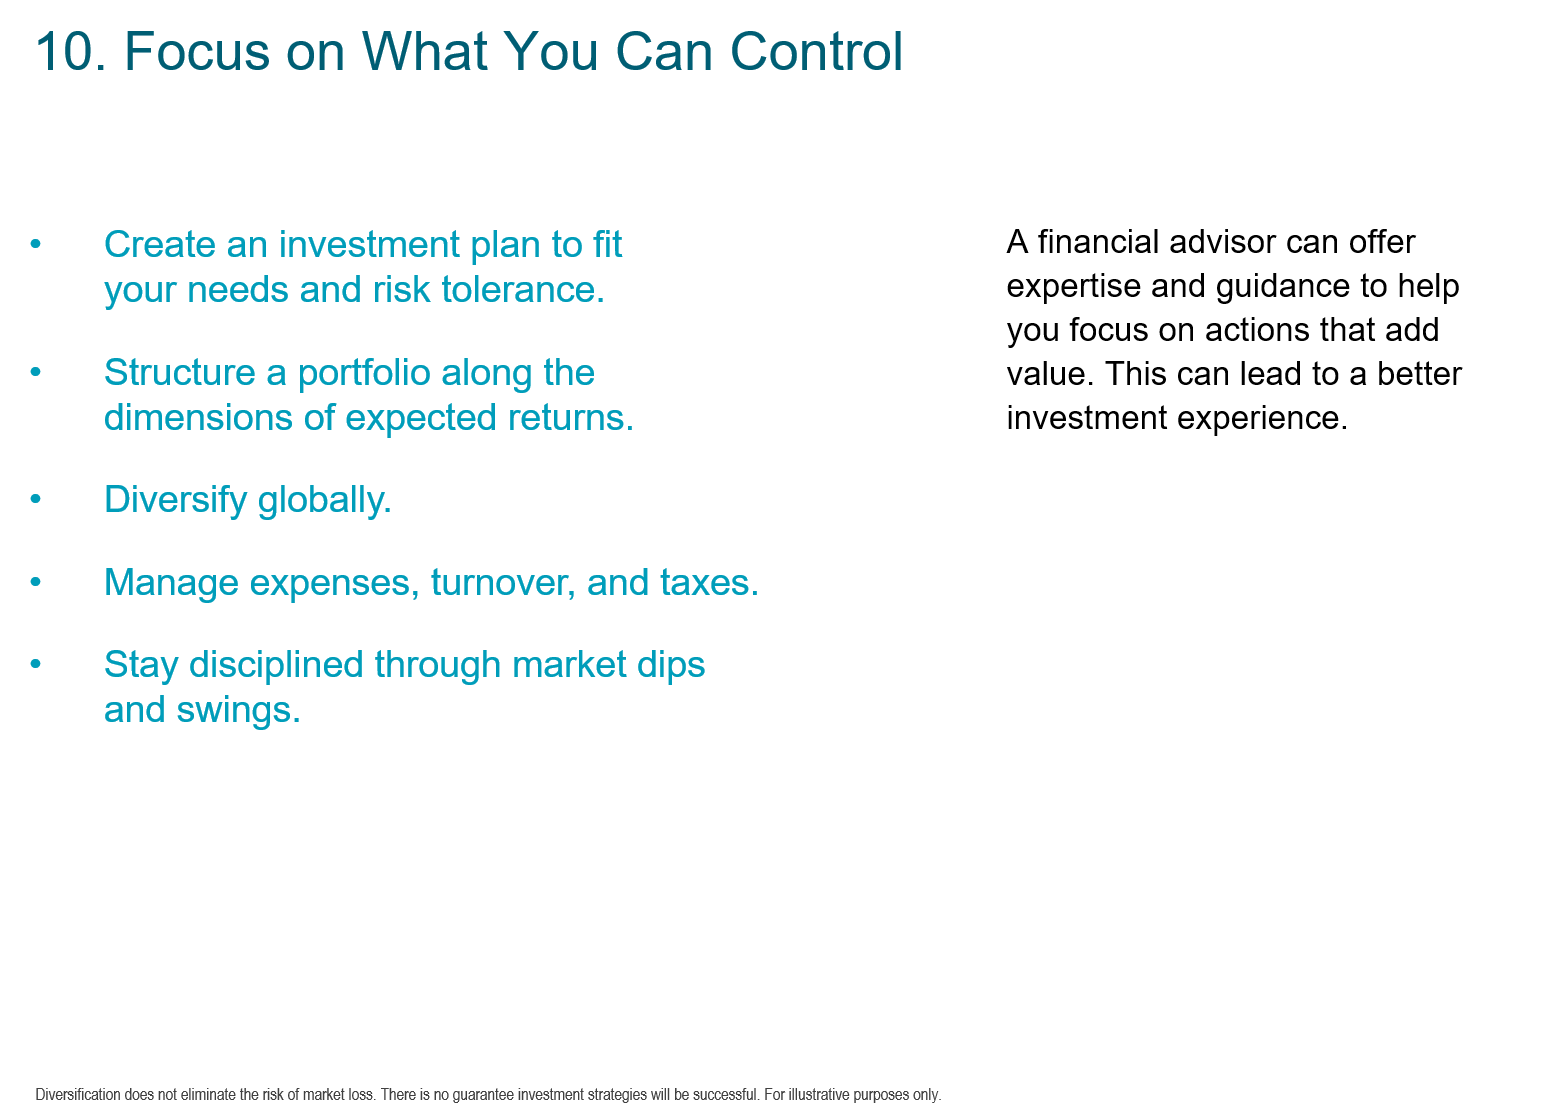 2019 Focus on What you can control.png